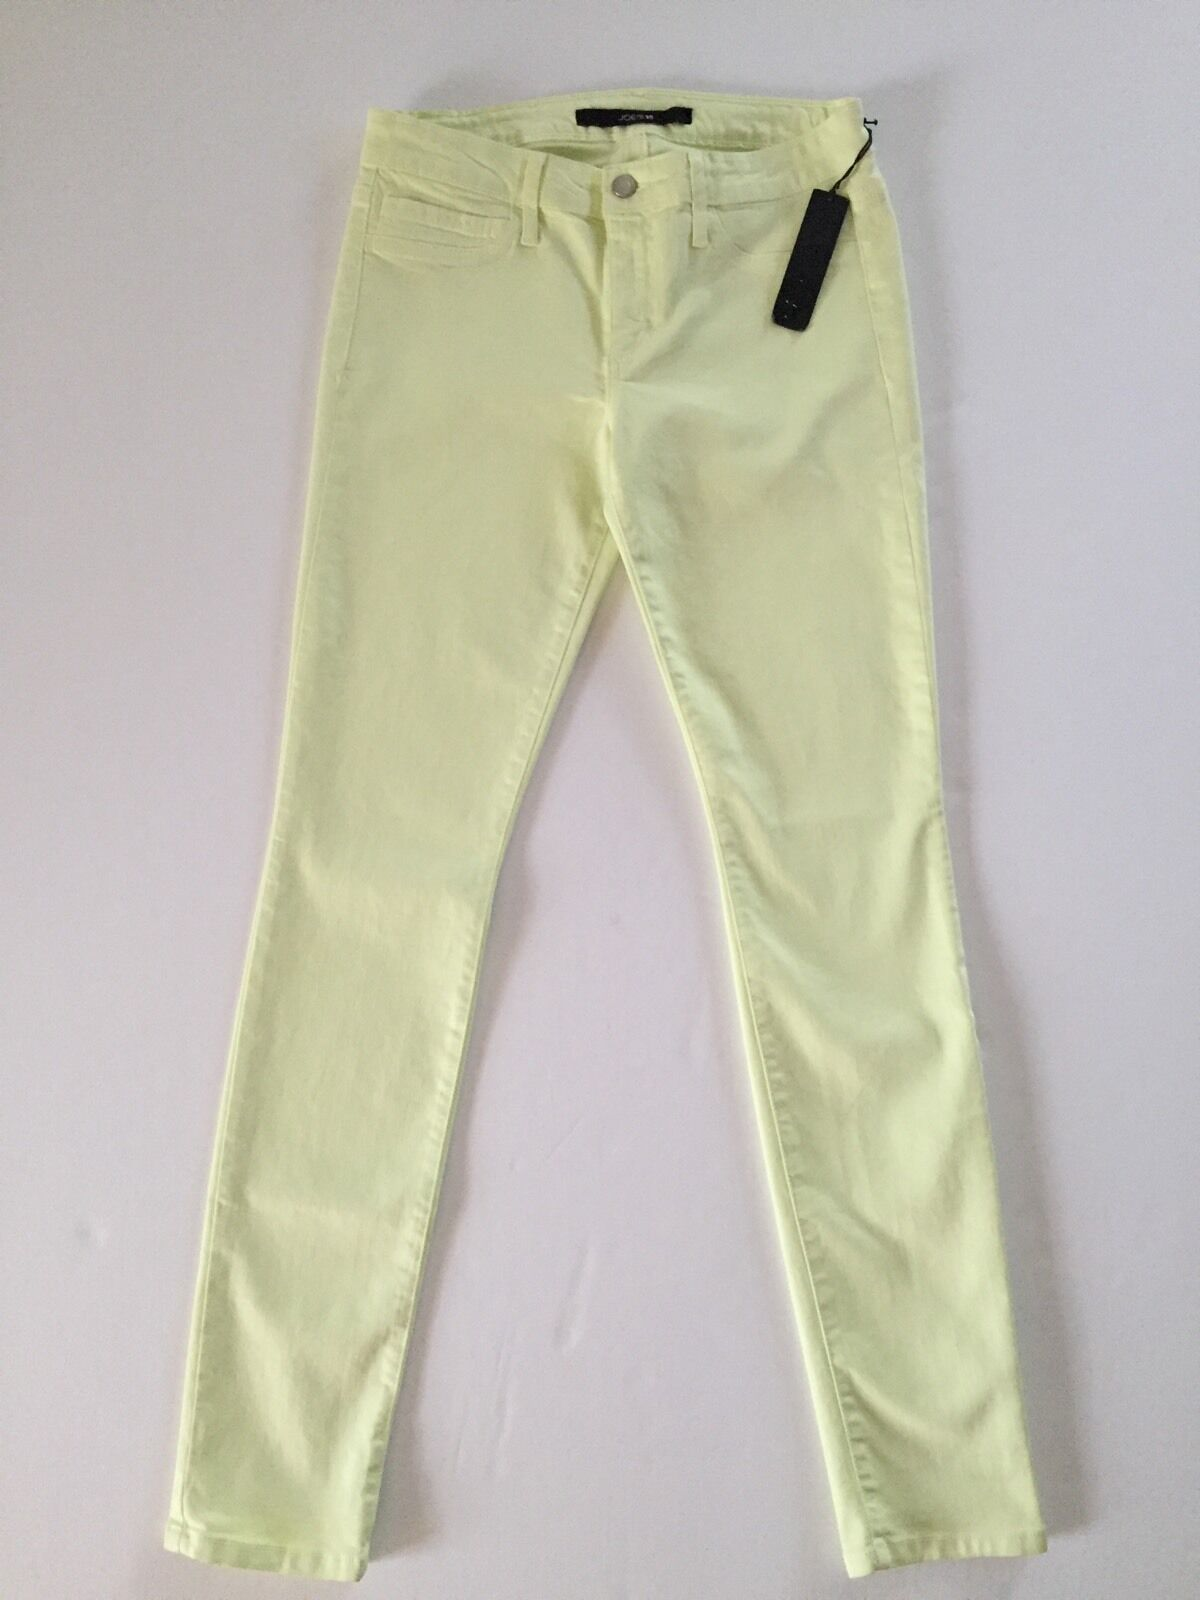 NWT Joes Jeans The Skinny in Lime yellow wax coated 29  169